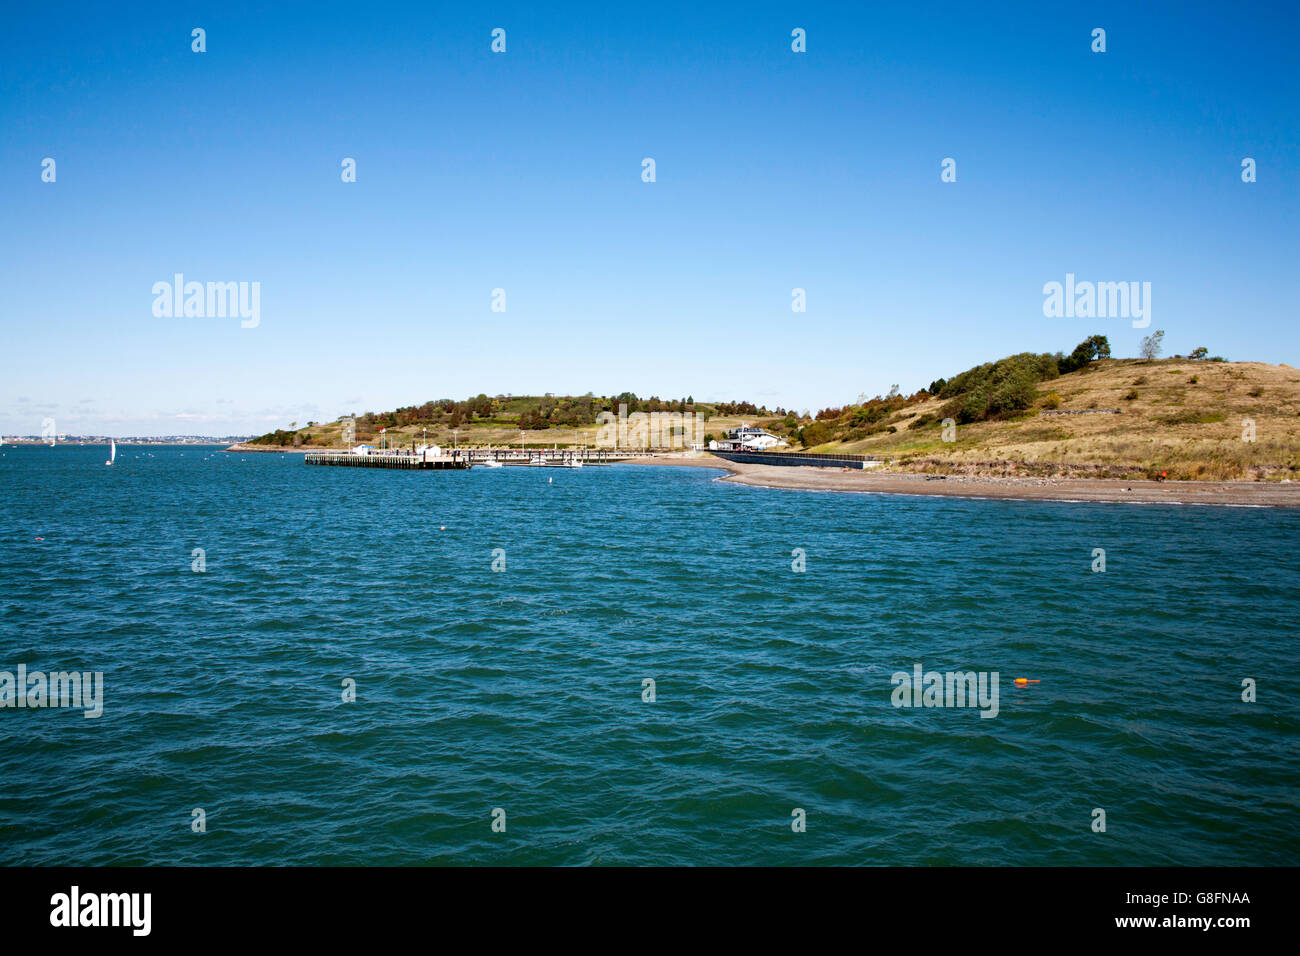 Spectacle Island Boston Harbor Islands Massachusetts USA - Stock Image